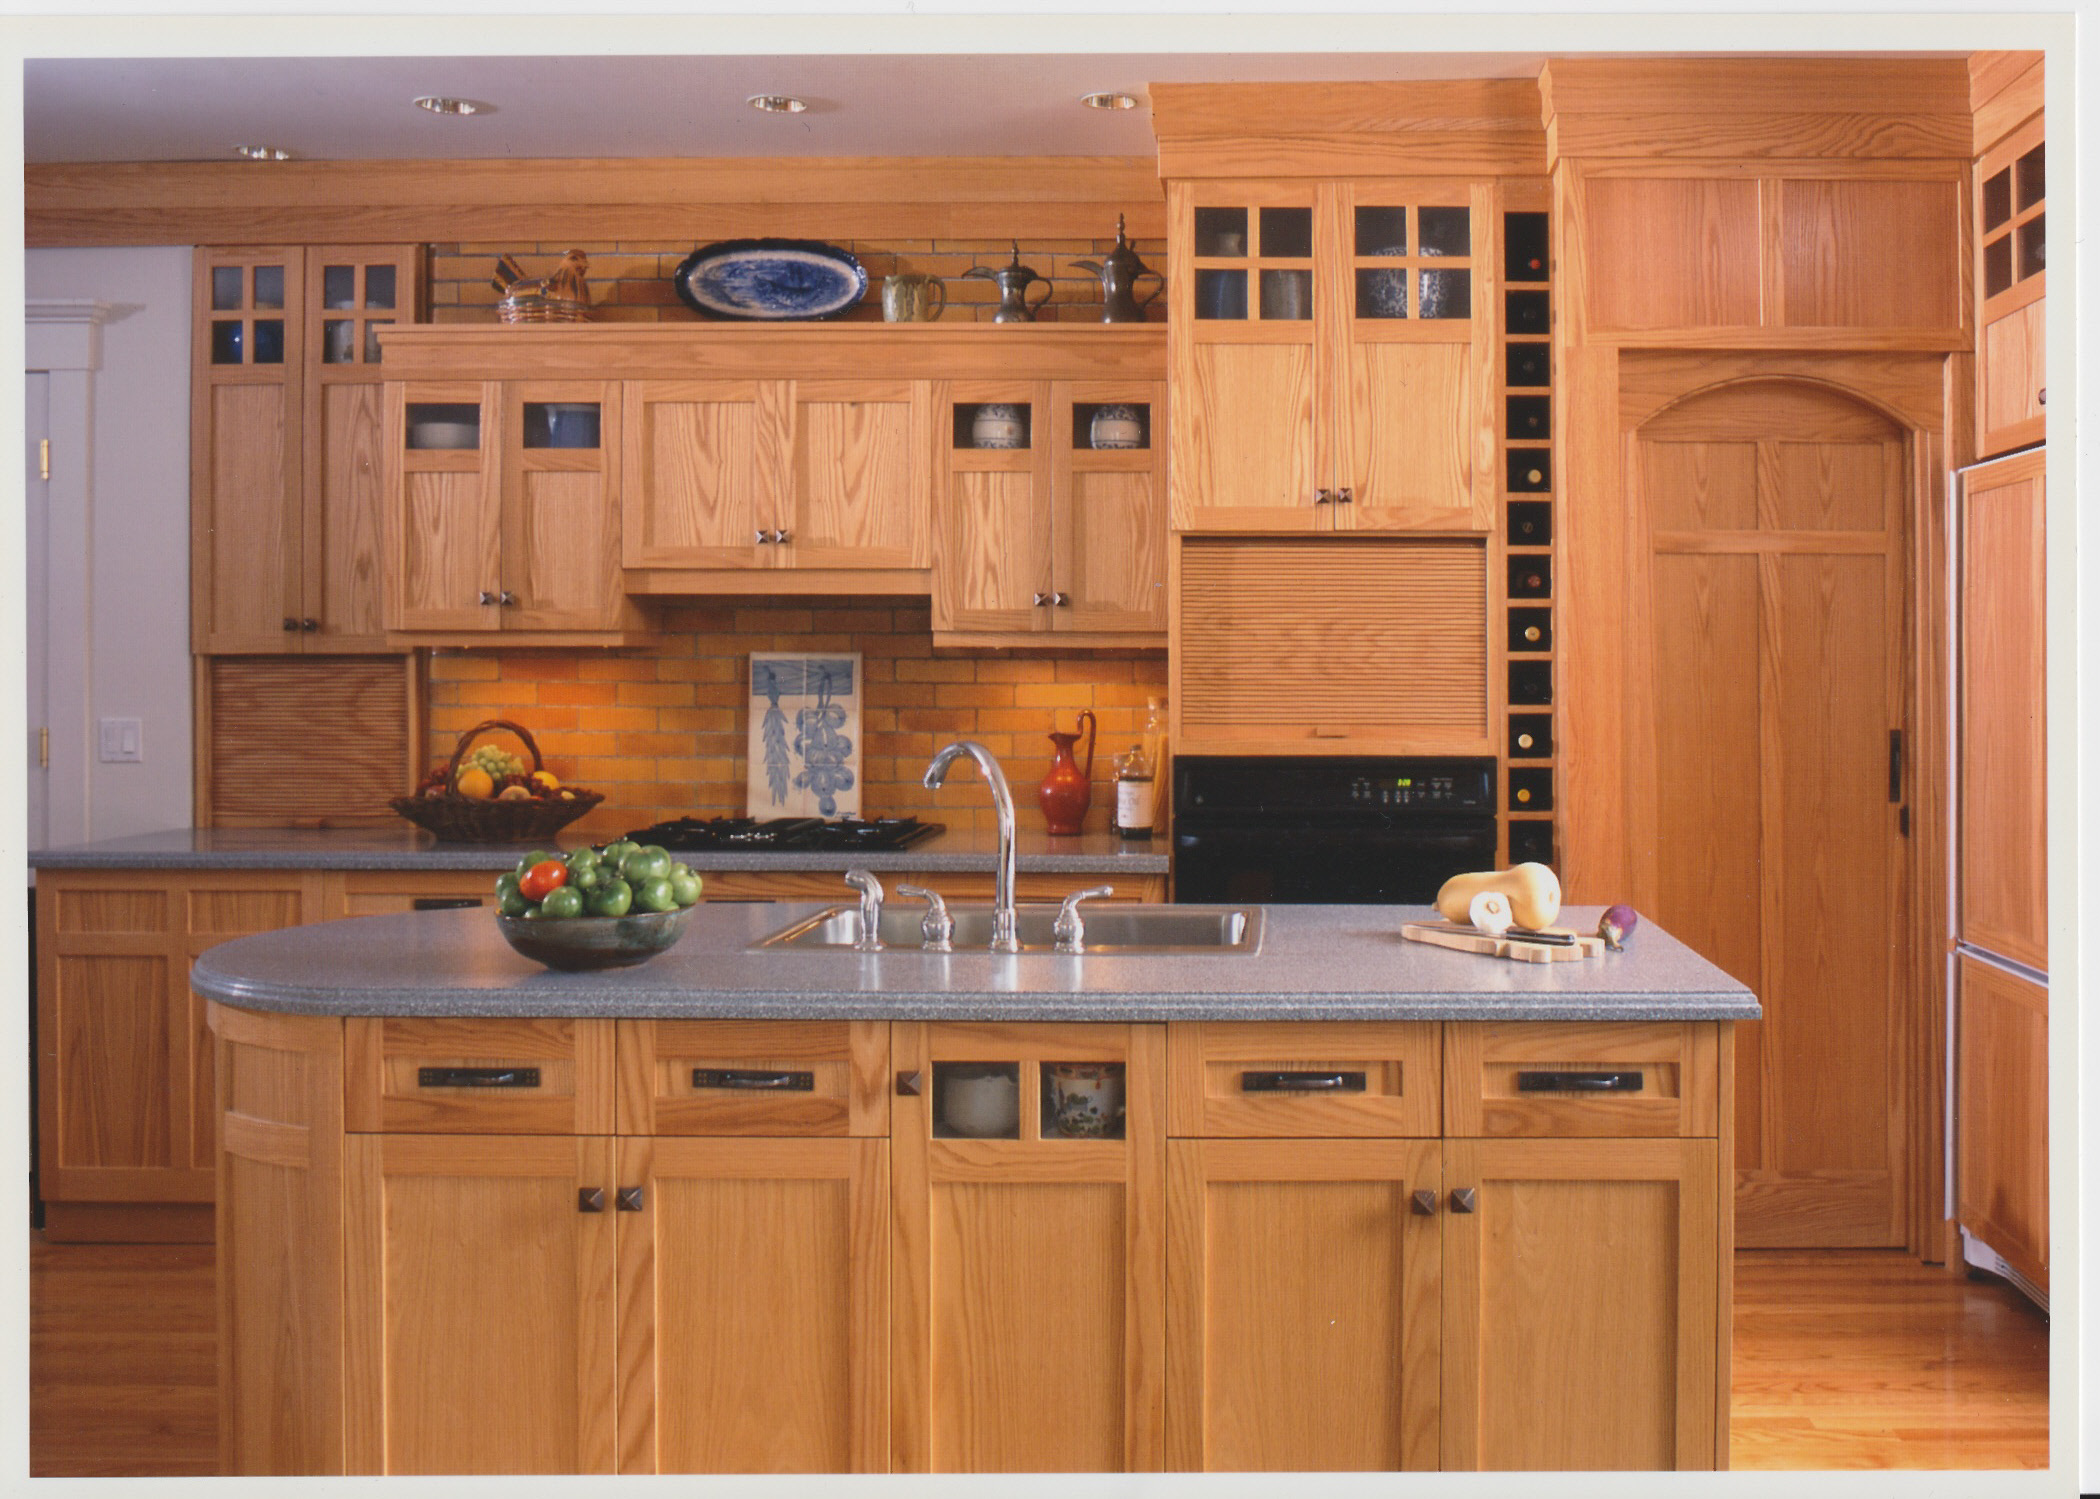 The cabinetry design blends with the style of the house, a large Arts  and Crafts style home on the shores of Long Island Sound. The brick  backsplash is actually the backside of the fireplace. The arched door at  the right opens into a pantry built under the stairs to the second  floor.